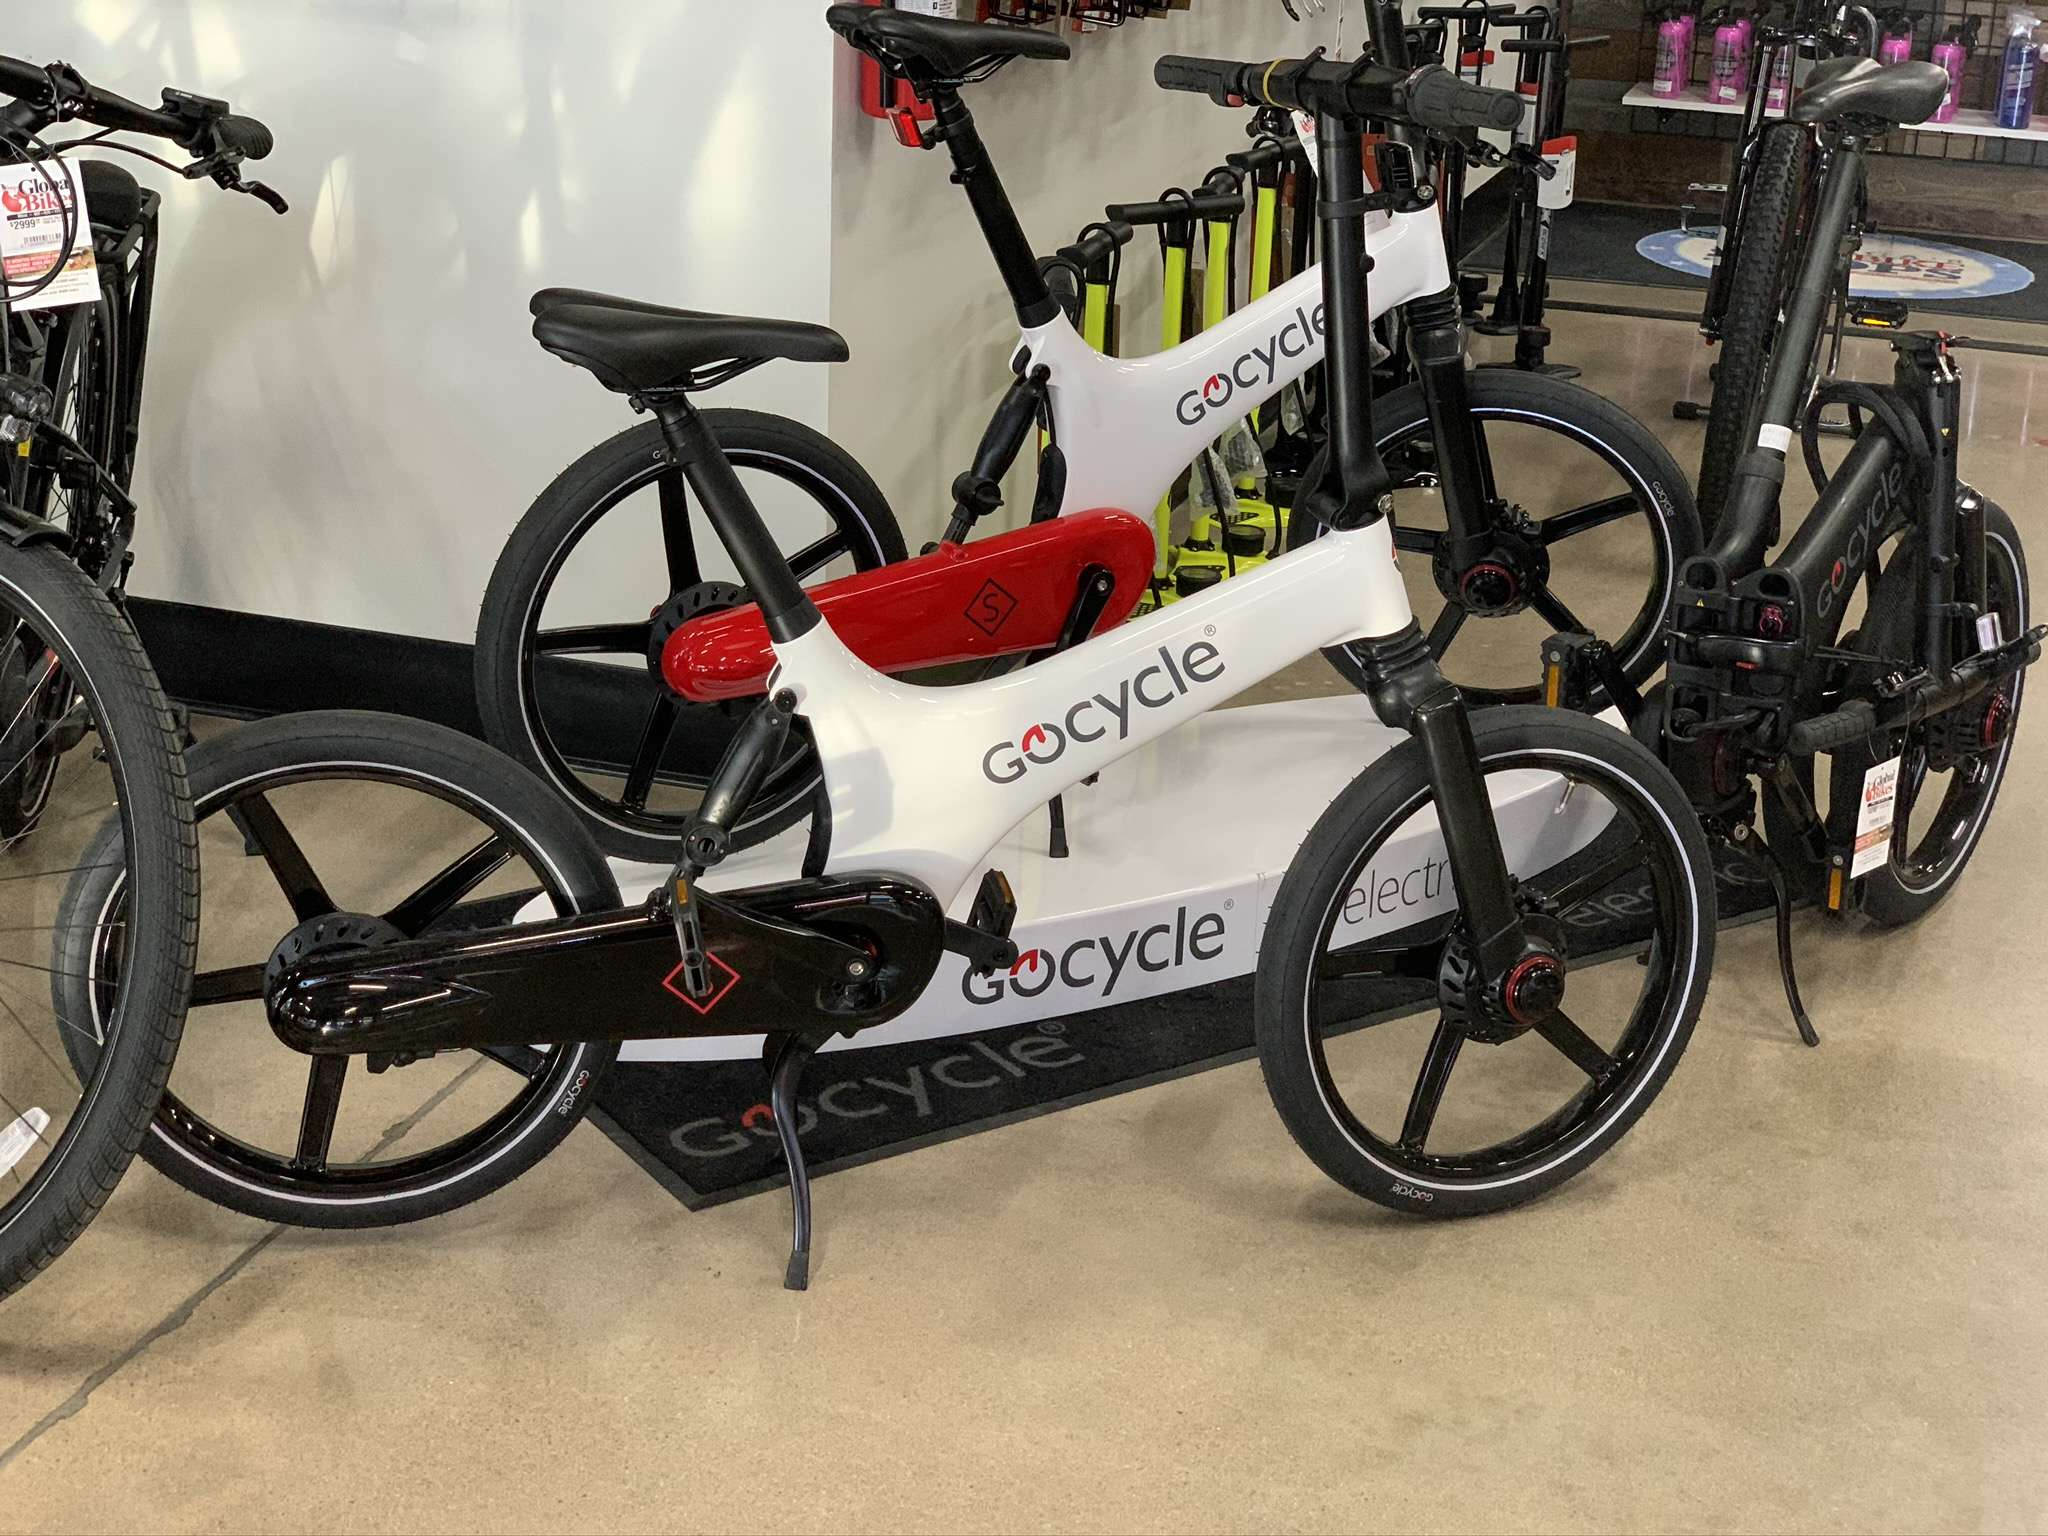 Gocycle folding electric bikes